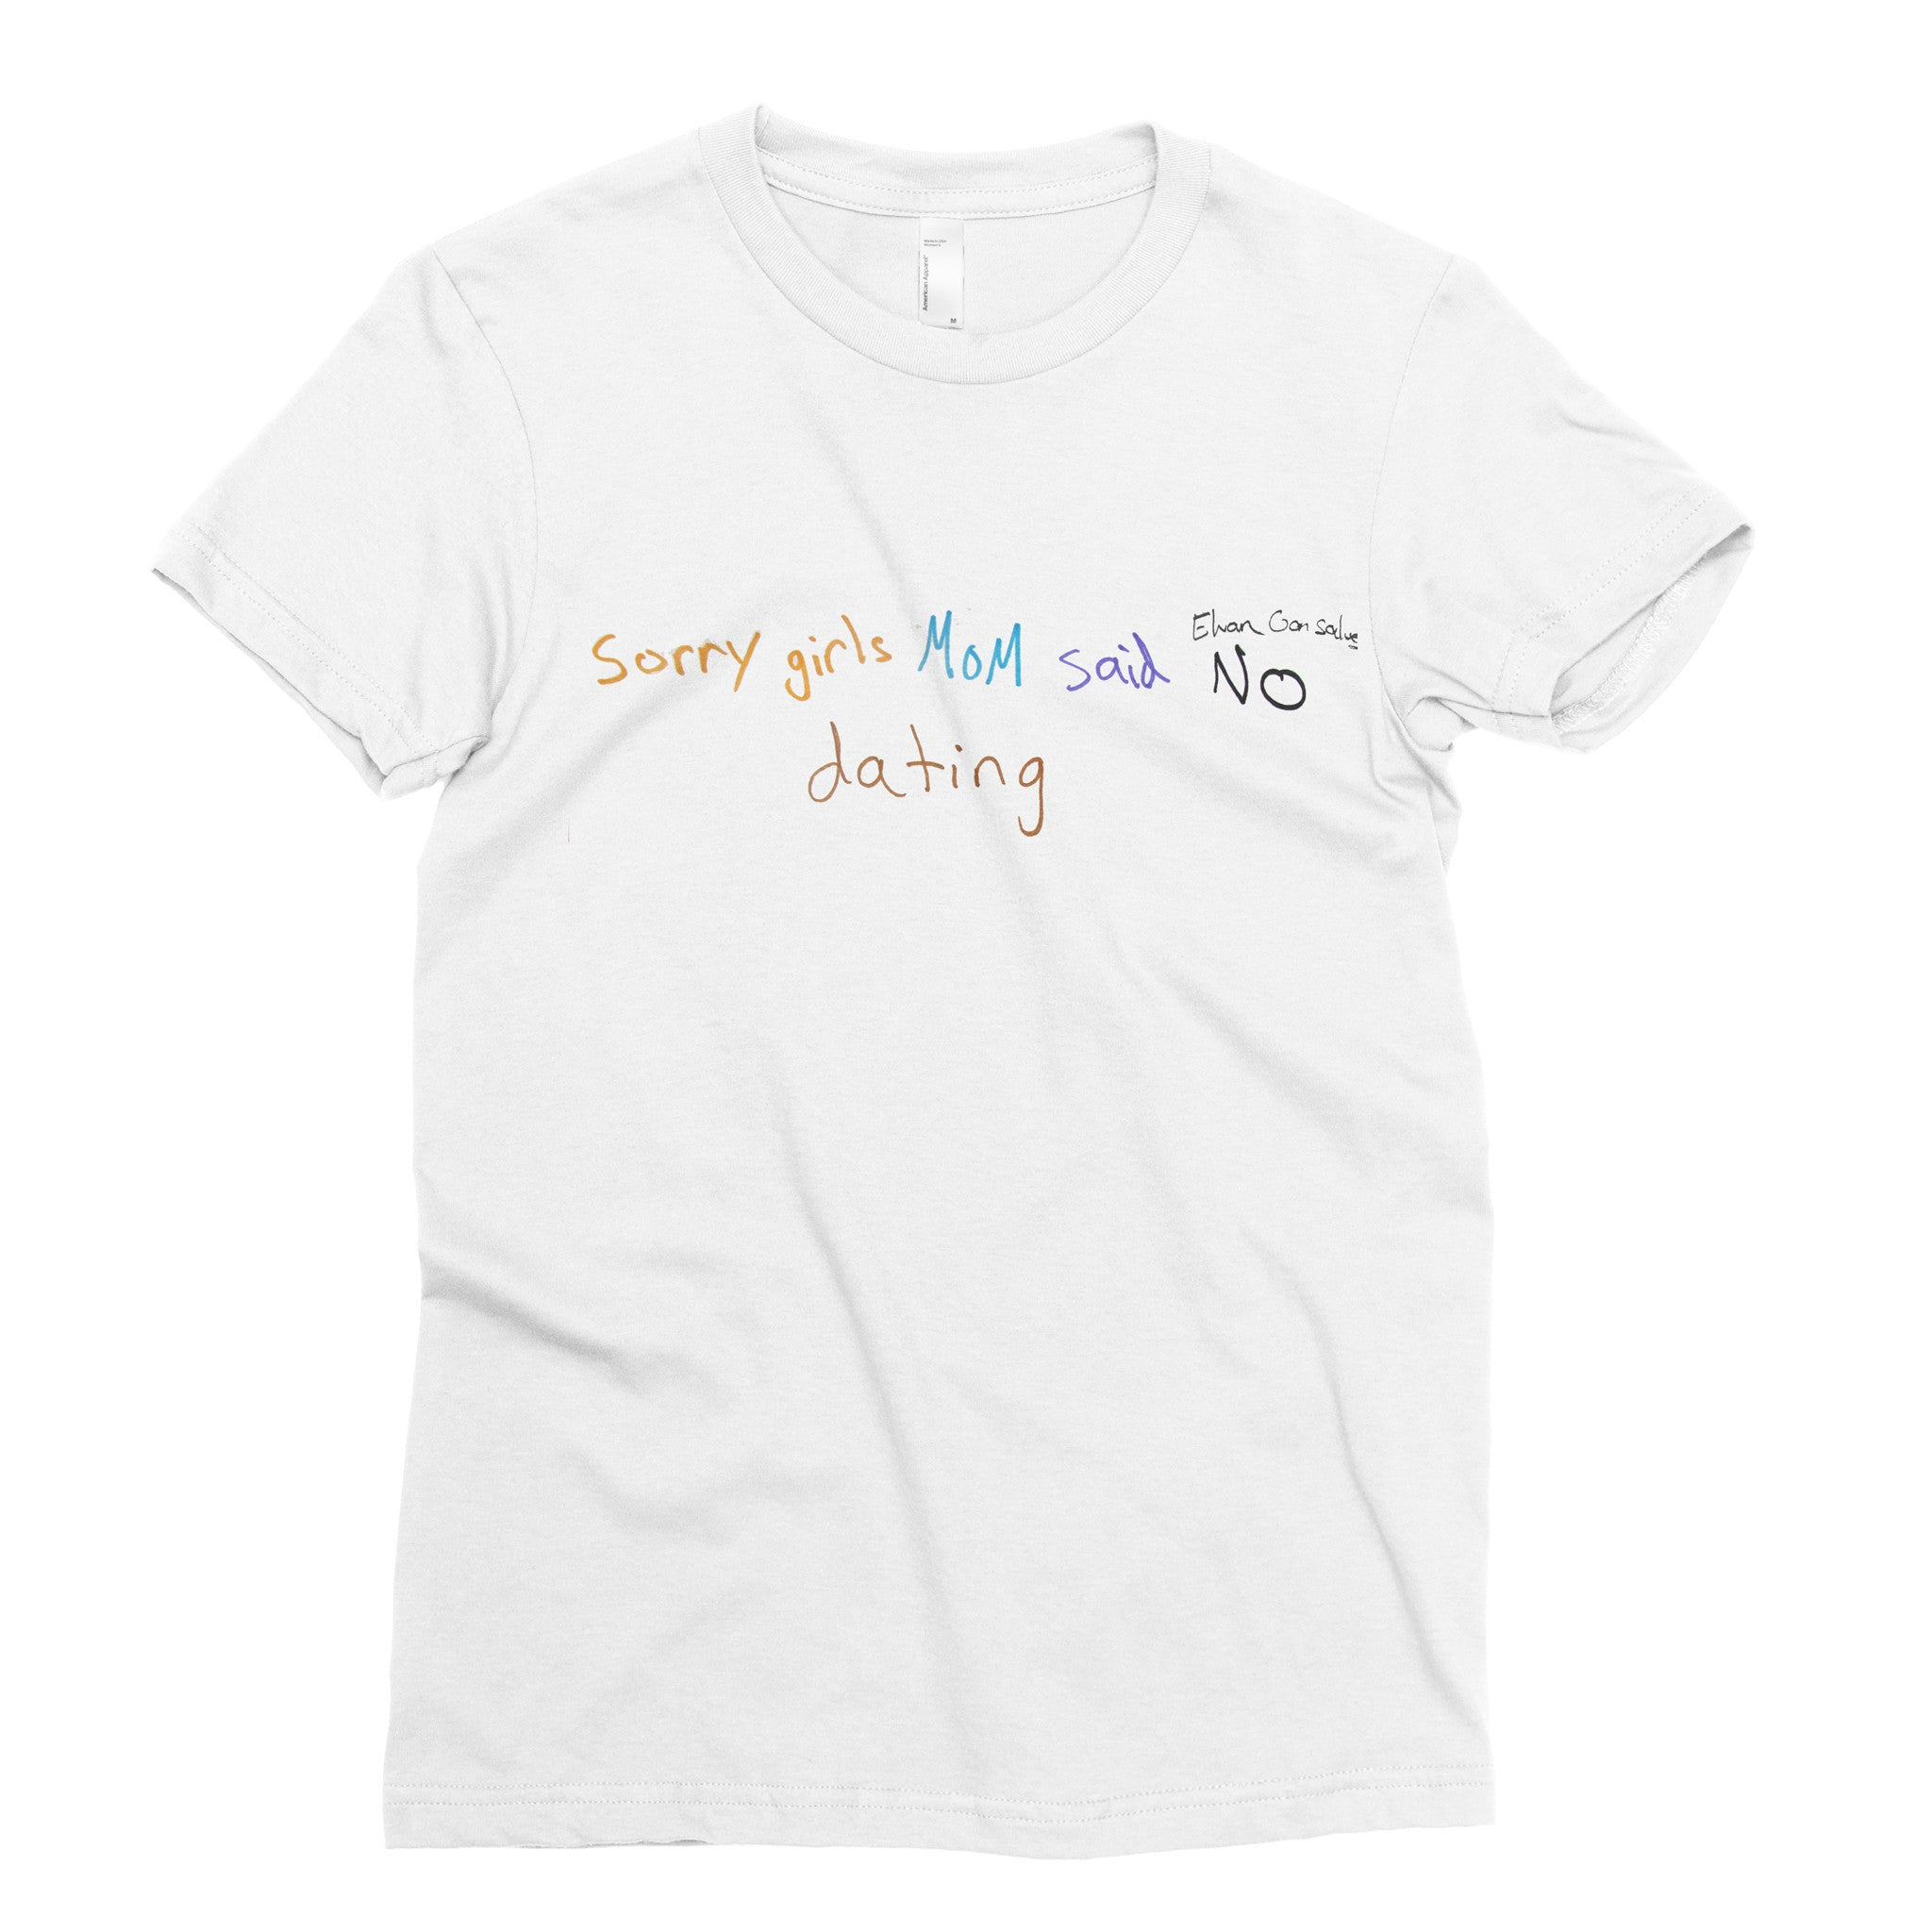 Too bad #1 - Adult T-shirt - Rightside Shirts